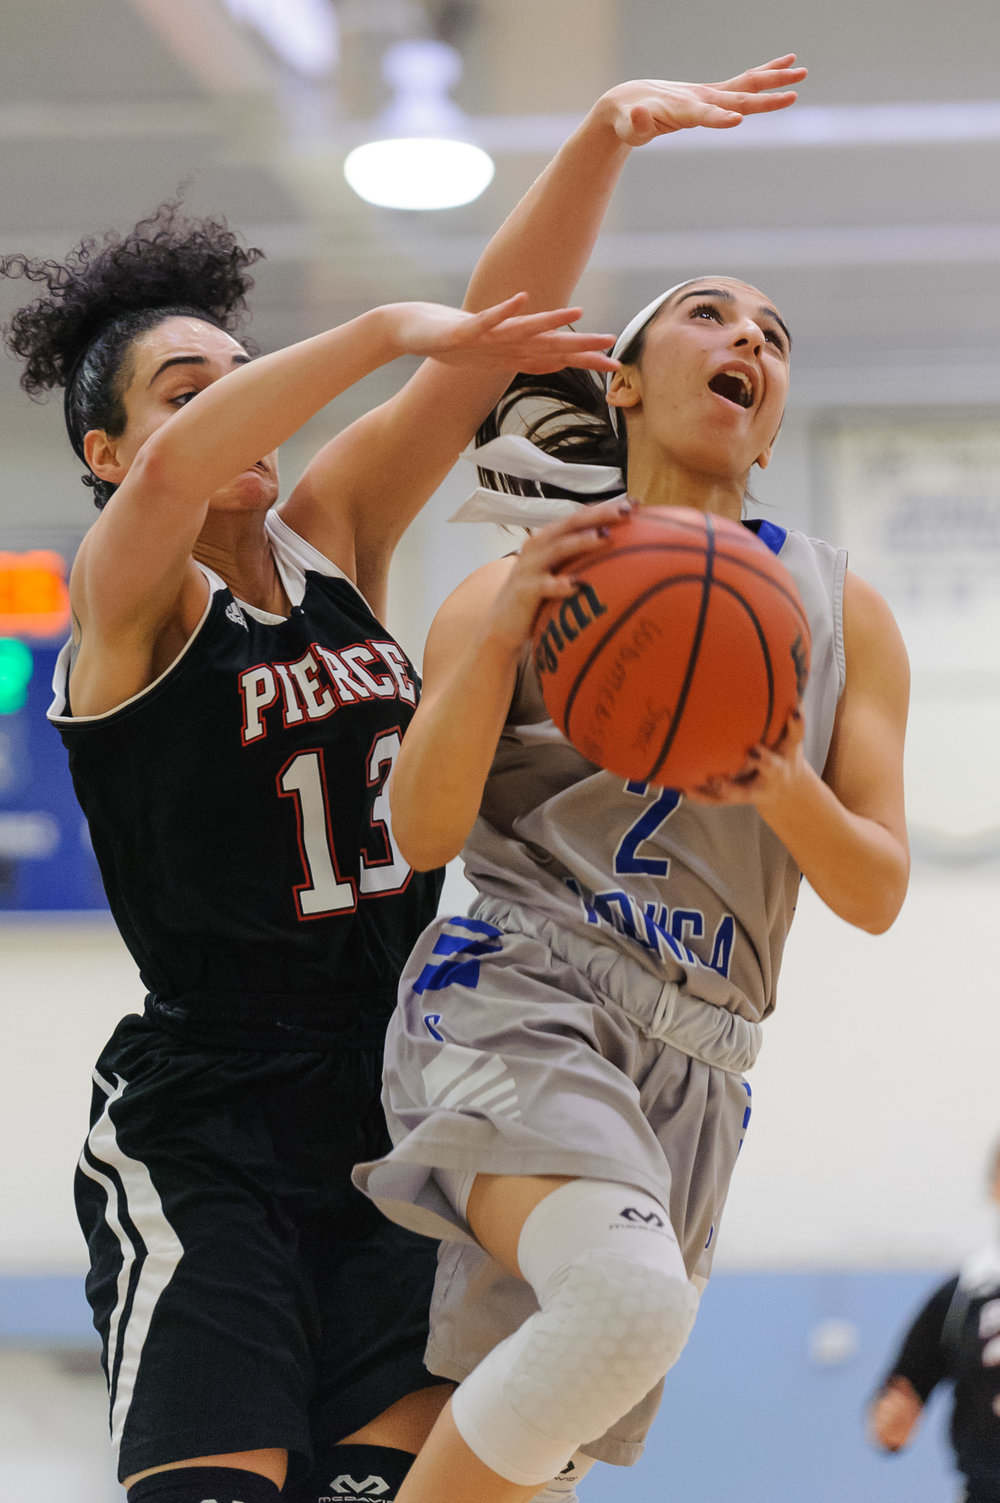 Guard Jessica Melamed (2,Right) of Santa Monica College attempts a difficult shot contested by Diana Kohanzad (13,Left) of Pierce College. The Santa Monica College Corsairs win their final game of the season 76-53 against the Pierce College Brahmas. The game was held at the SMC Pavilion at the Santa Monica College Main Campus in Santa Monica, Calif.. February 17, 2018. (Photo by: Justin Han/Corsair Staff)